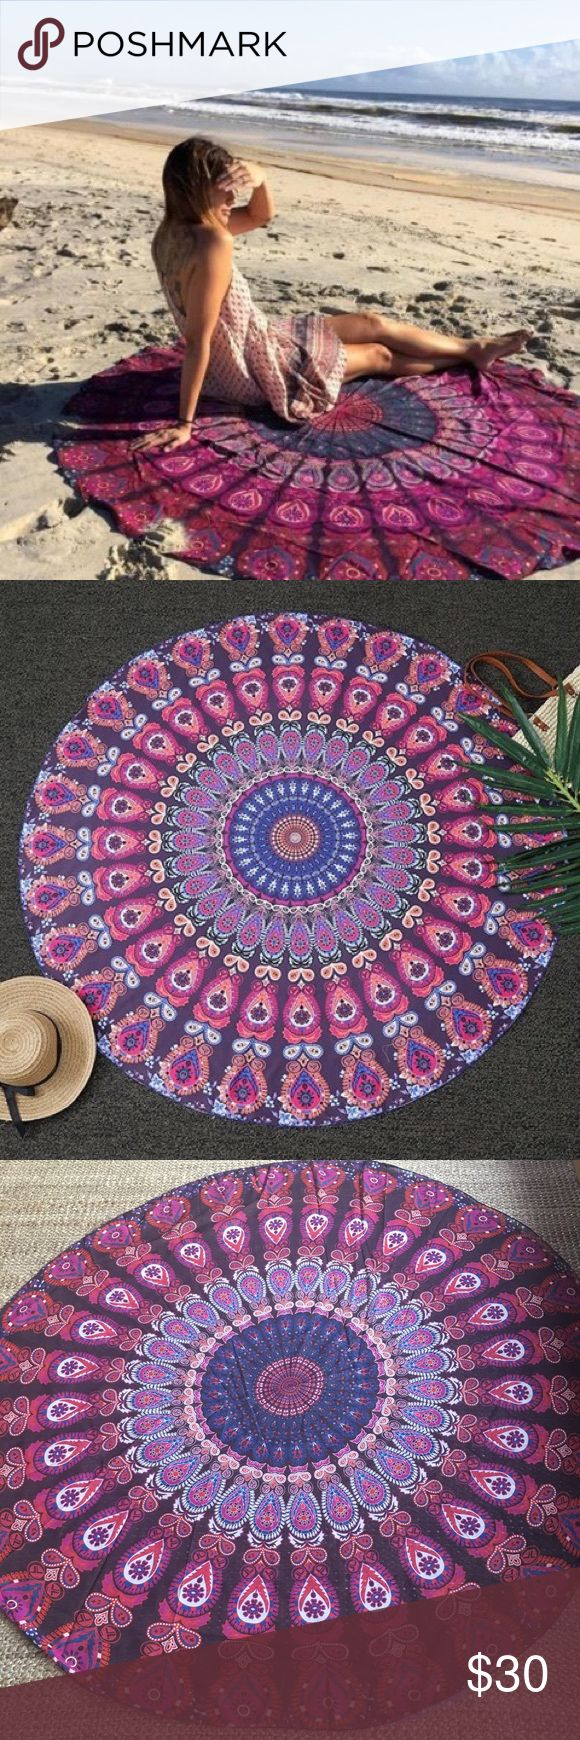 "Multipurpose round hippie boho mandala beach throw New , chiffon material , be creative and use it as wall hanging, tablecloth, beach cover up , couch cover ....., diameter approx 59"" Swim"